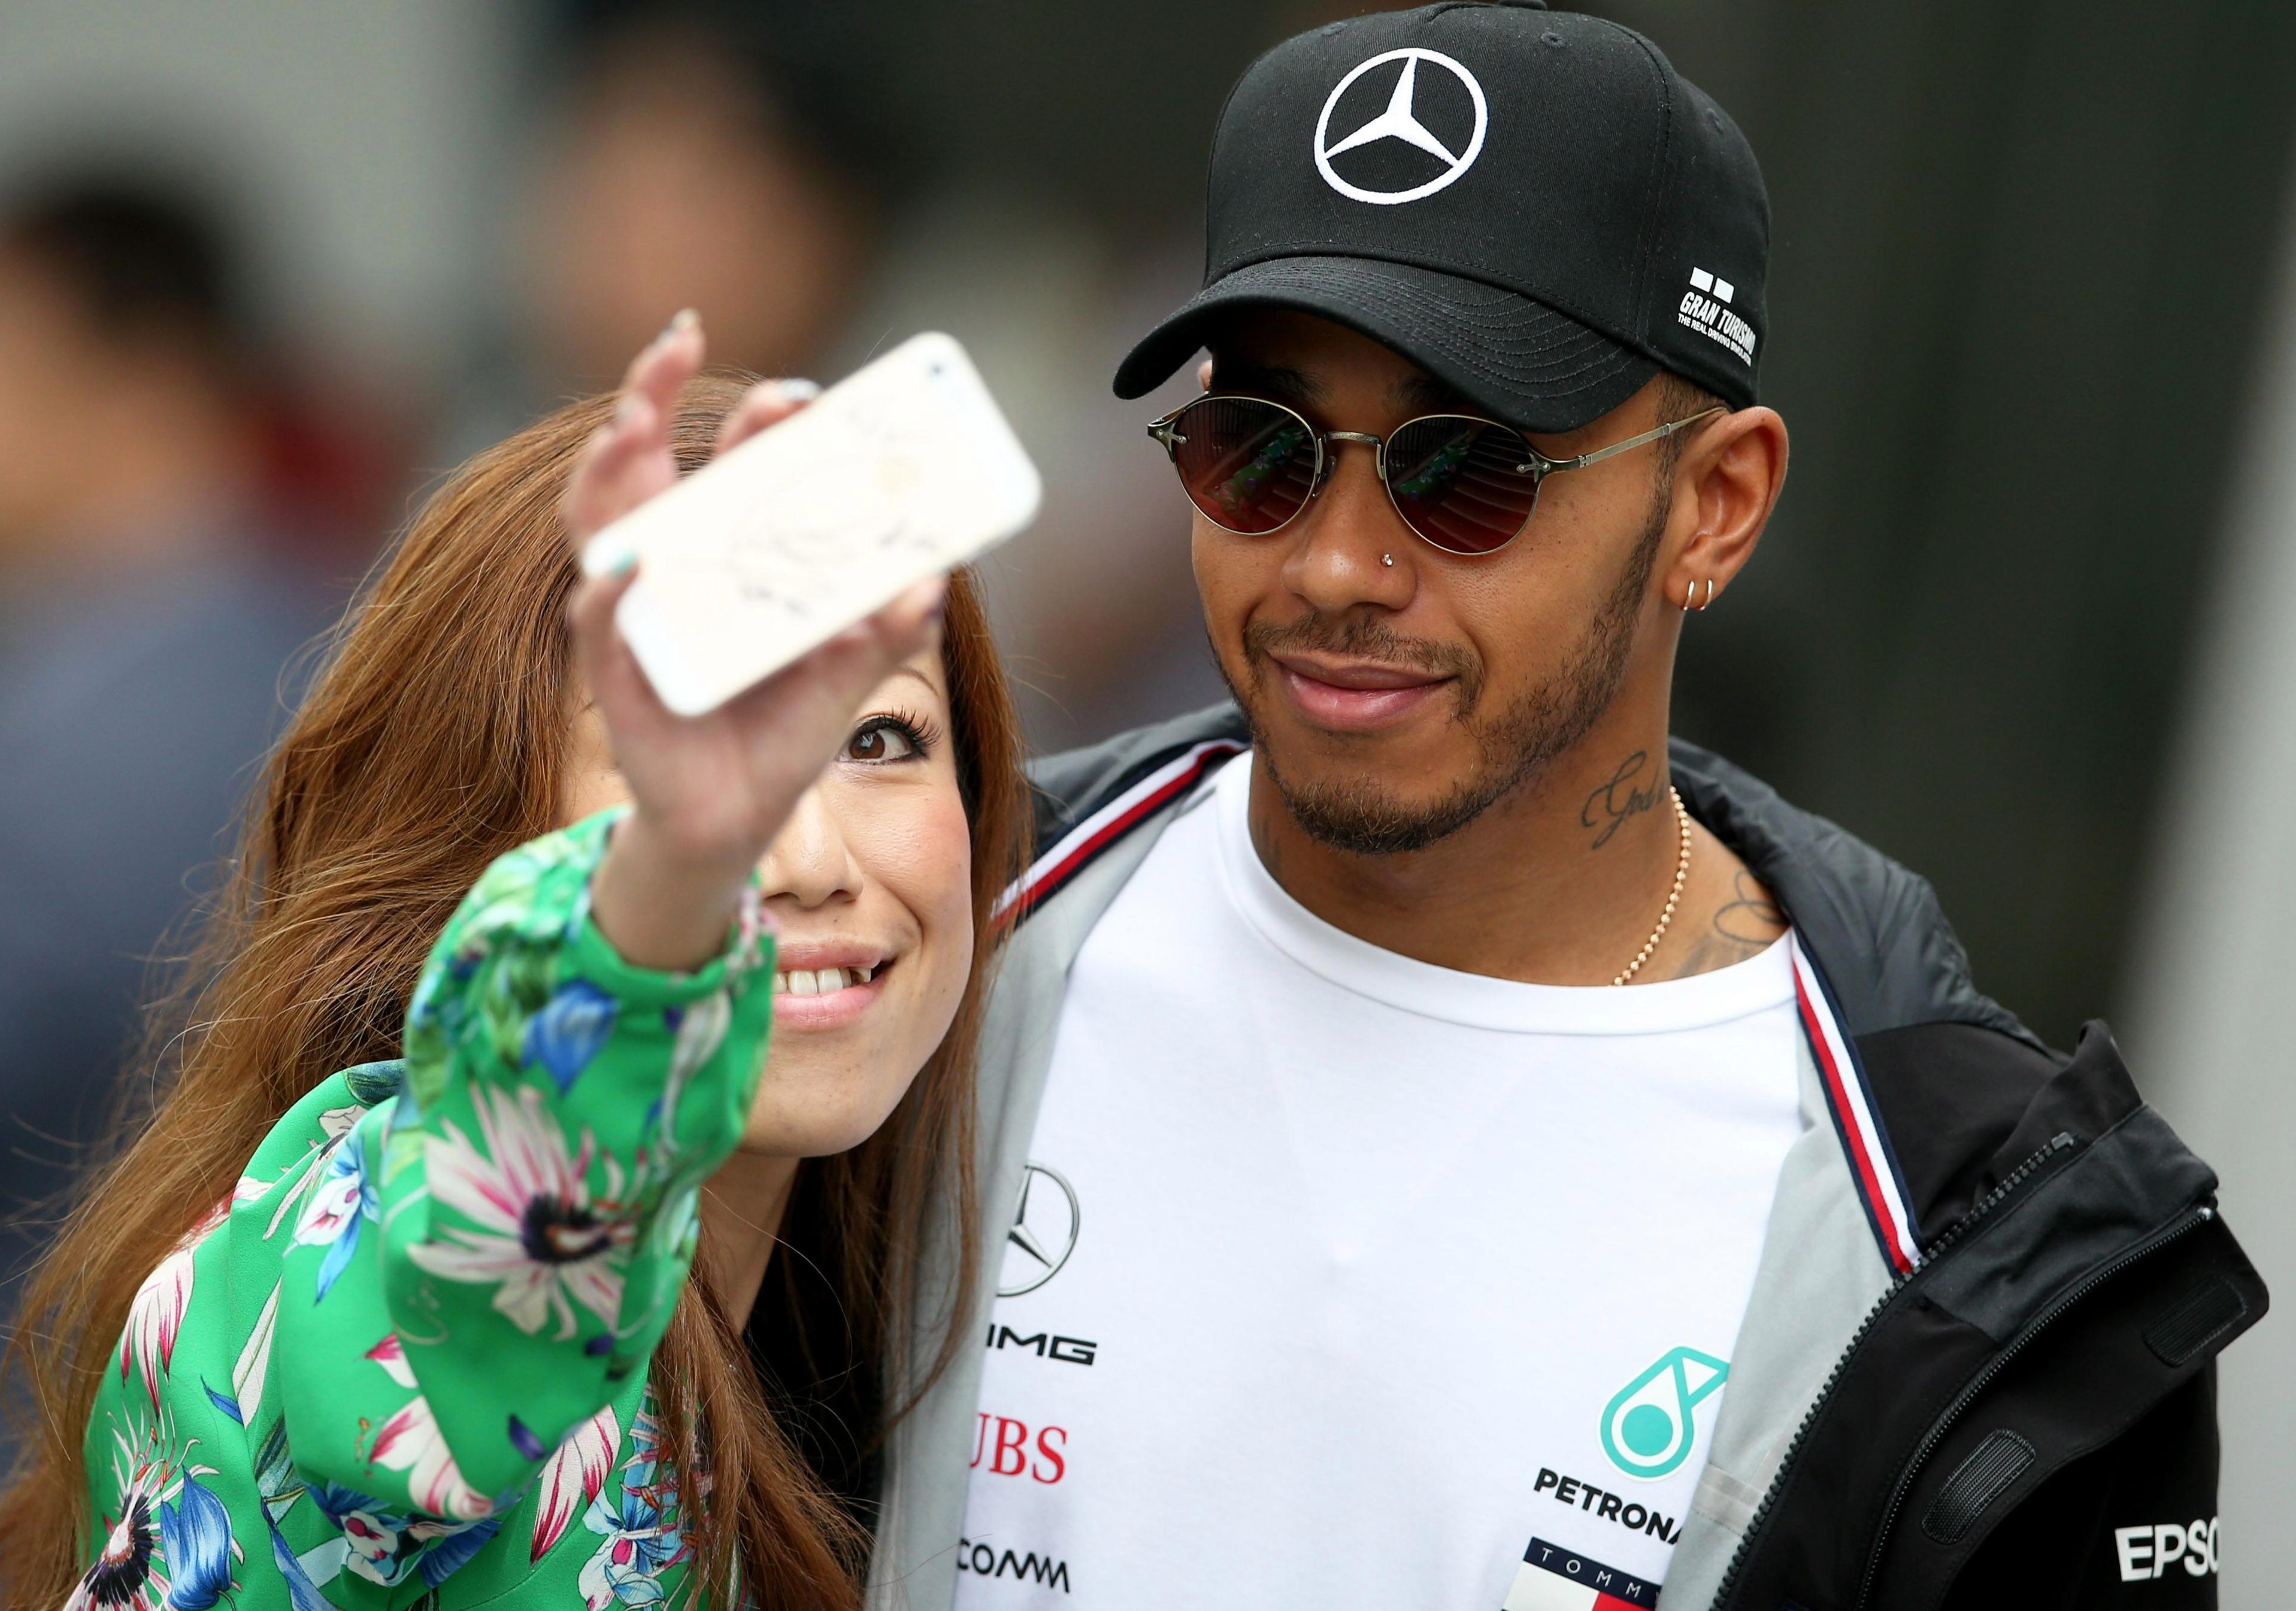 To those who know him personally, Lewis Hamilton is regarded as a genuine and charitable person, at odds with the public image of the mega-rich sports star